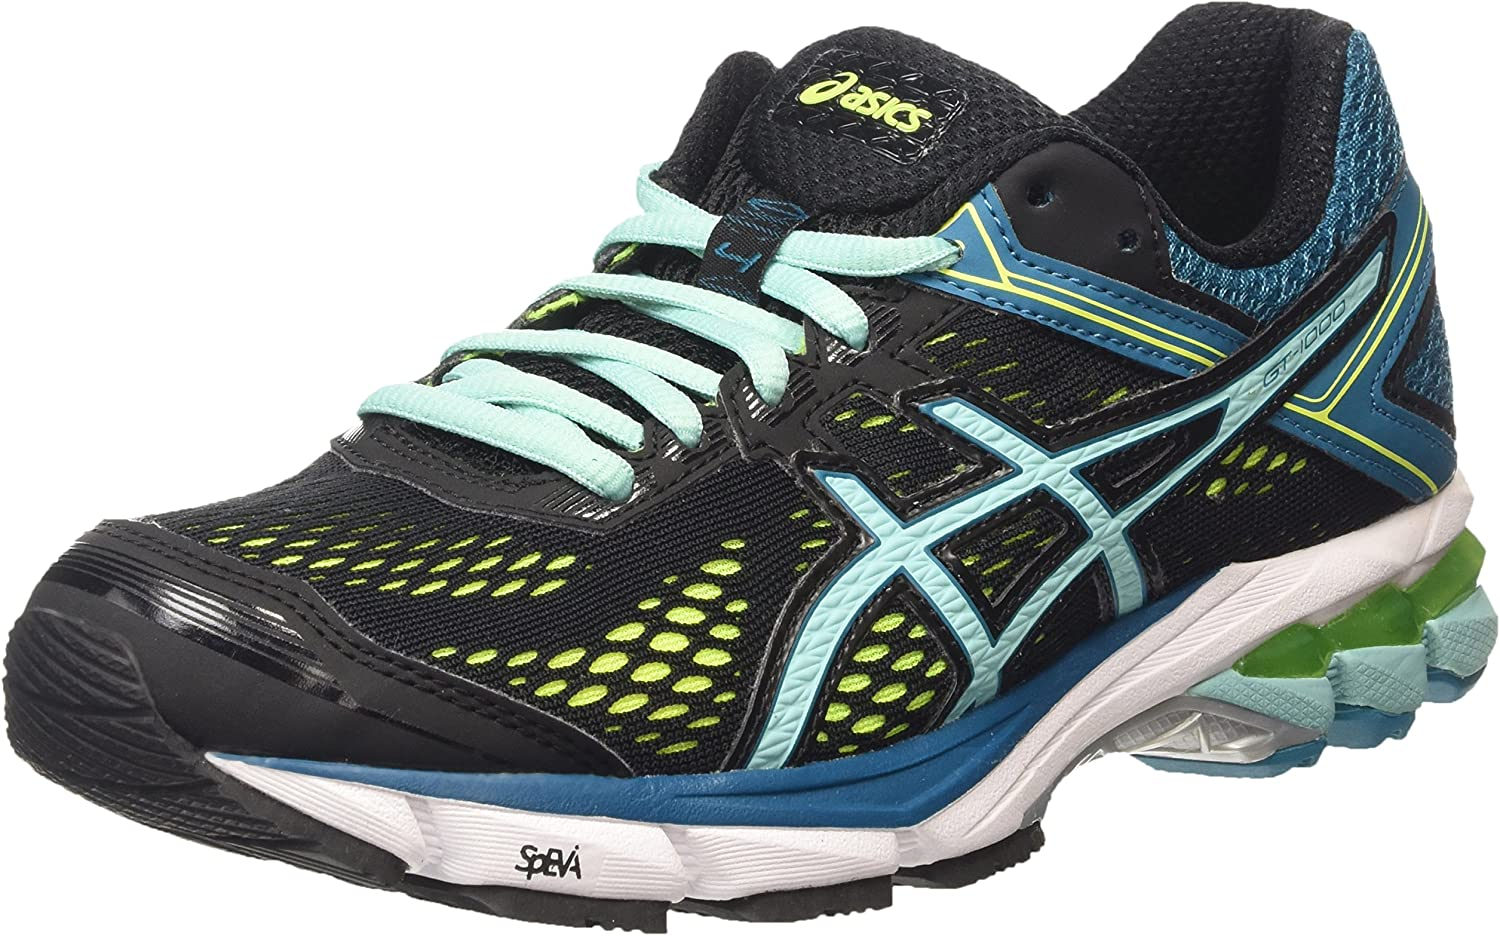 ASICS GT-1000 4 Women's Running shoes - SS16